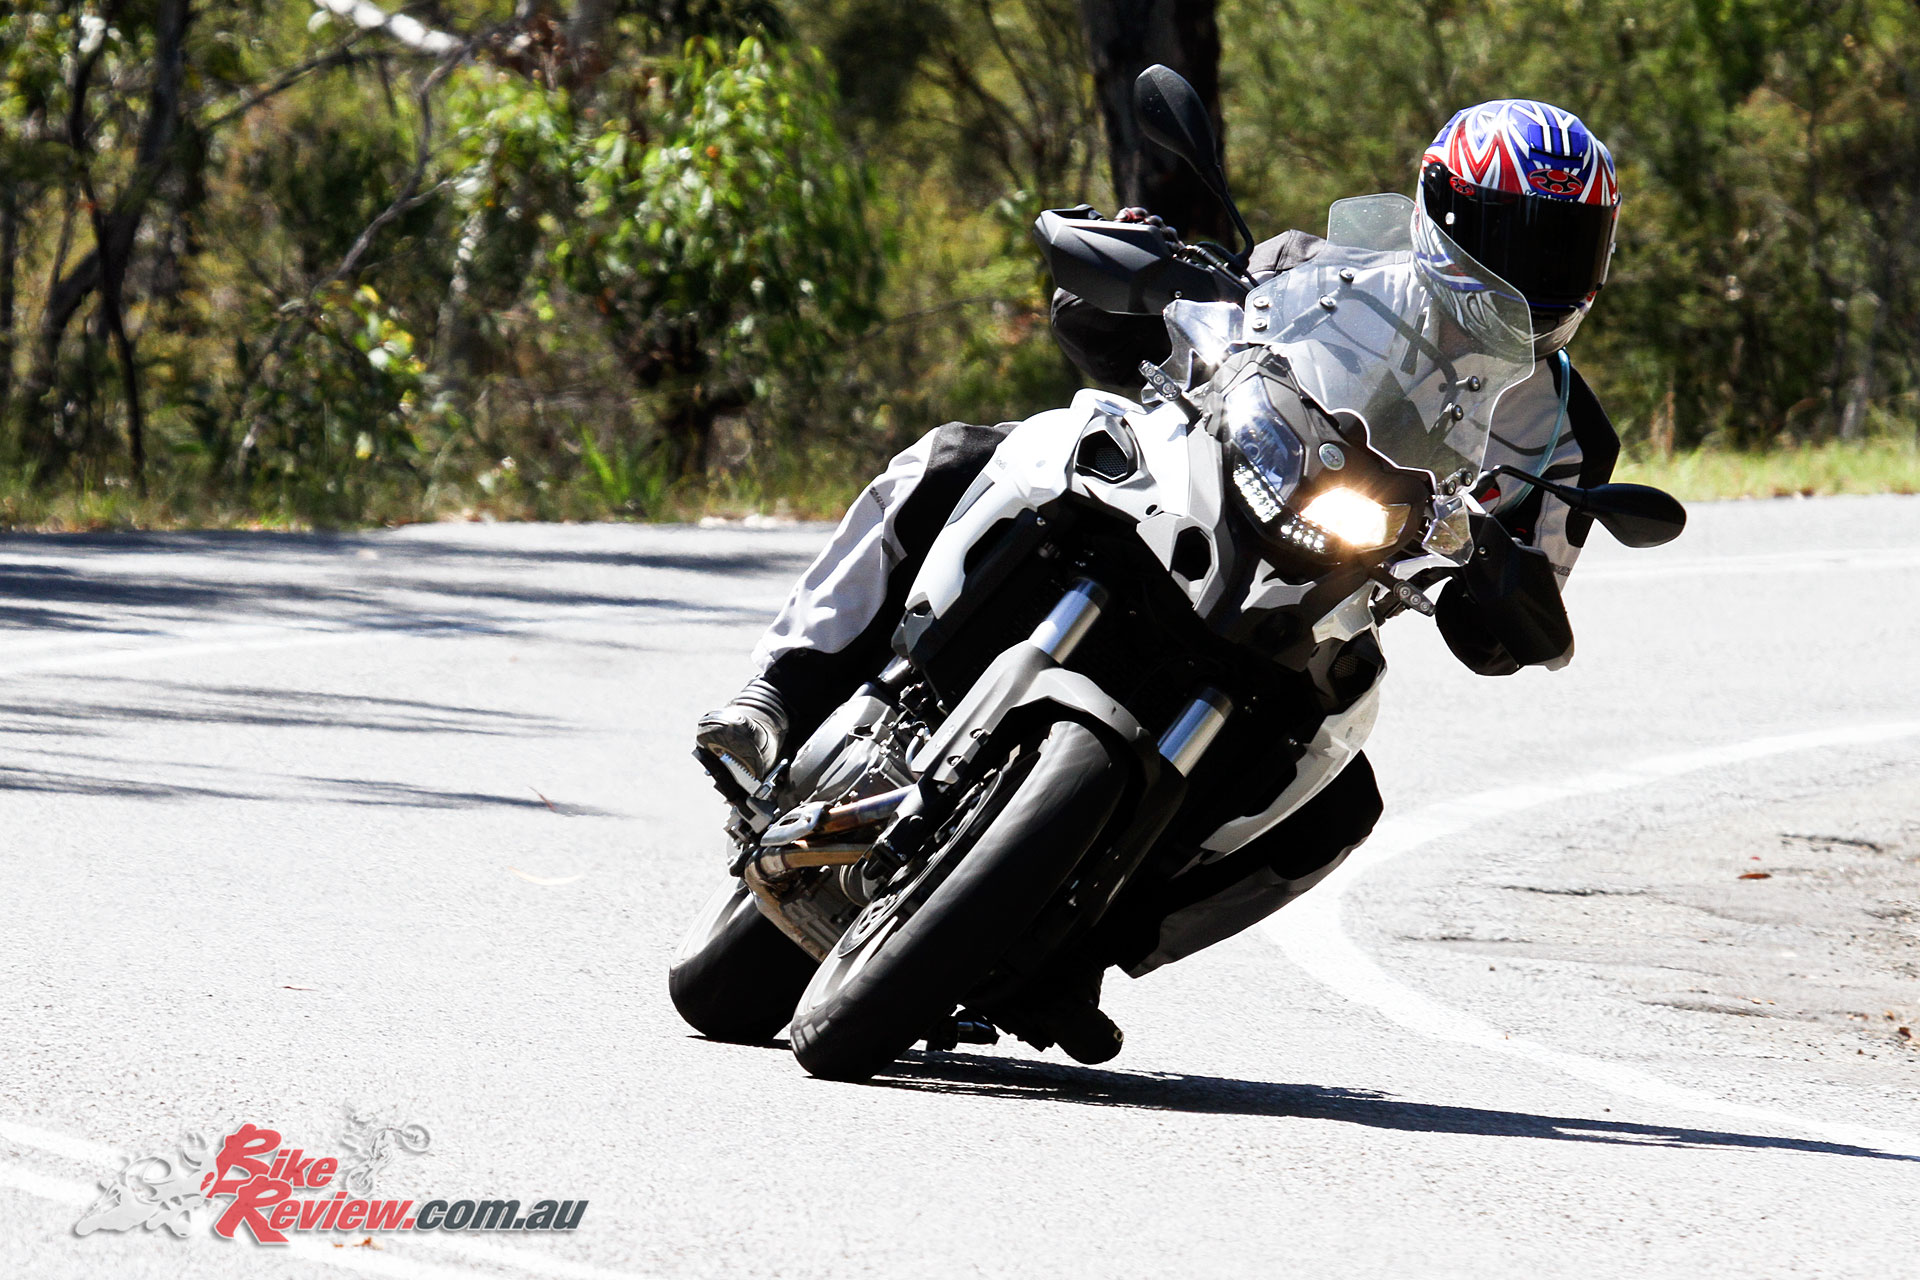 Review 2018 Benelli Trk 502 Lams Bike Review